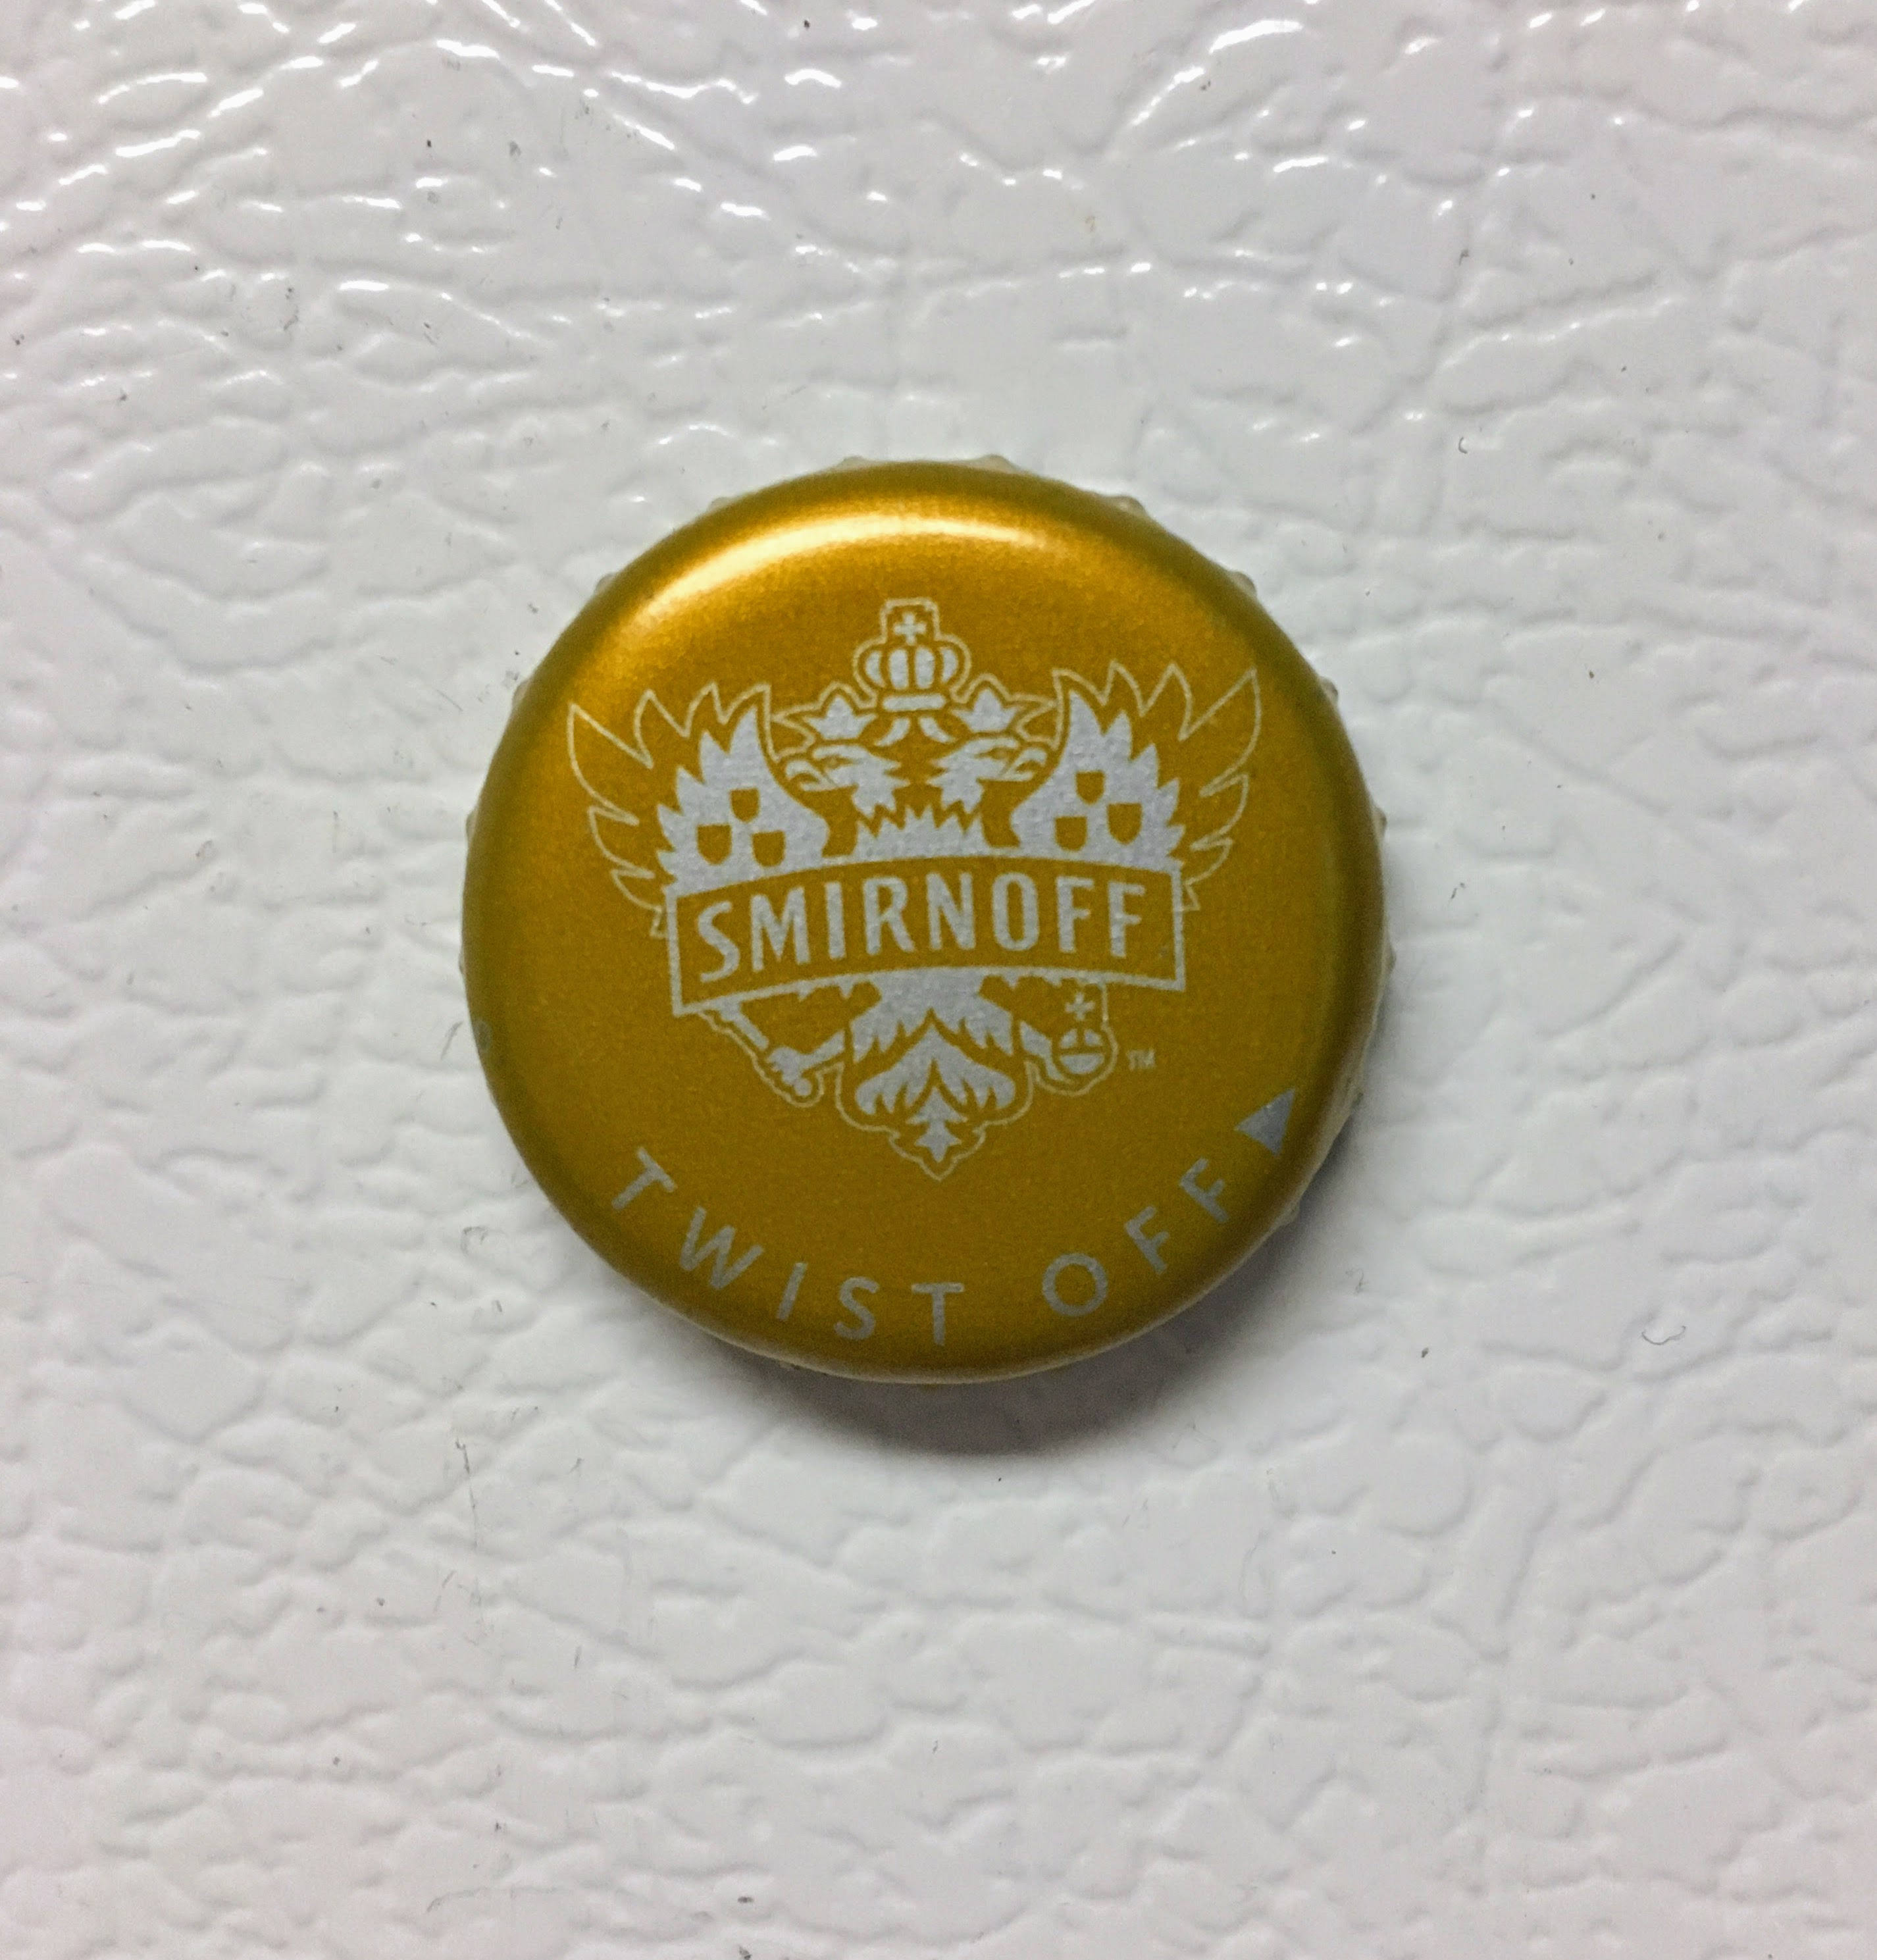 Handmade Smirnoff Bottle Cap Refrigerator Magnets